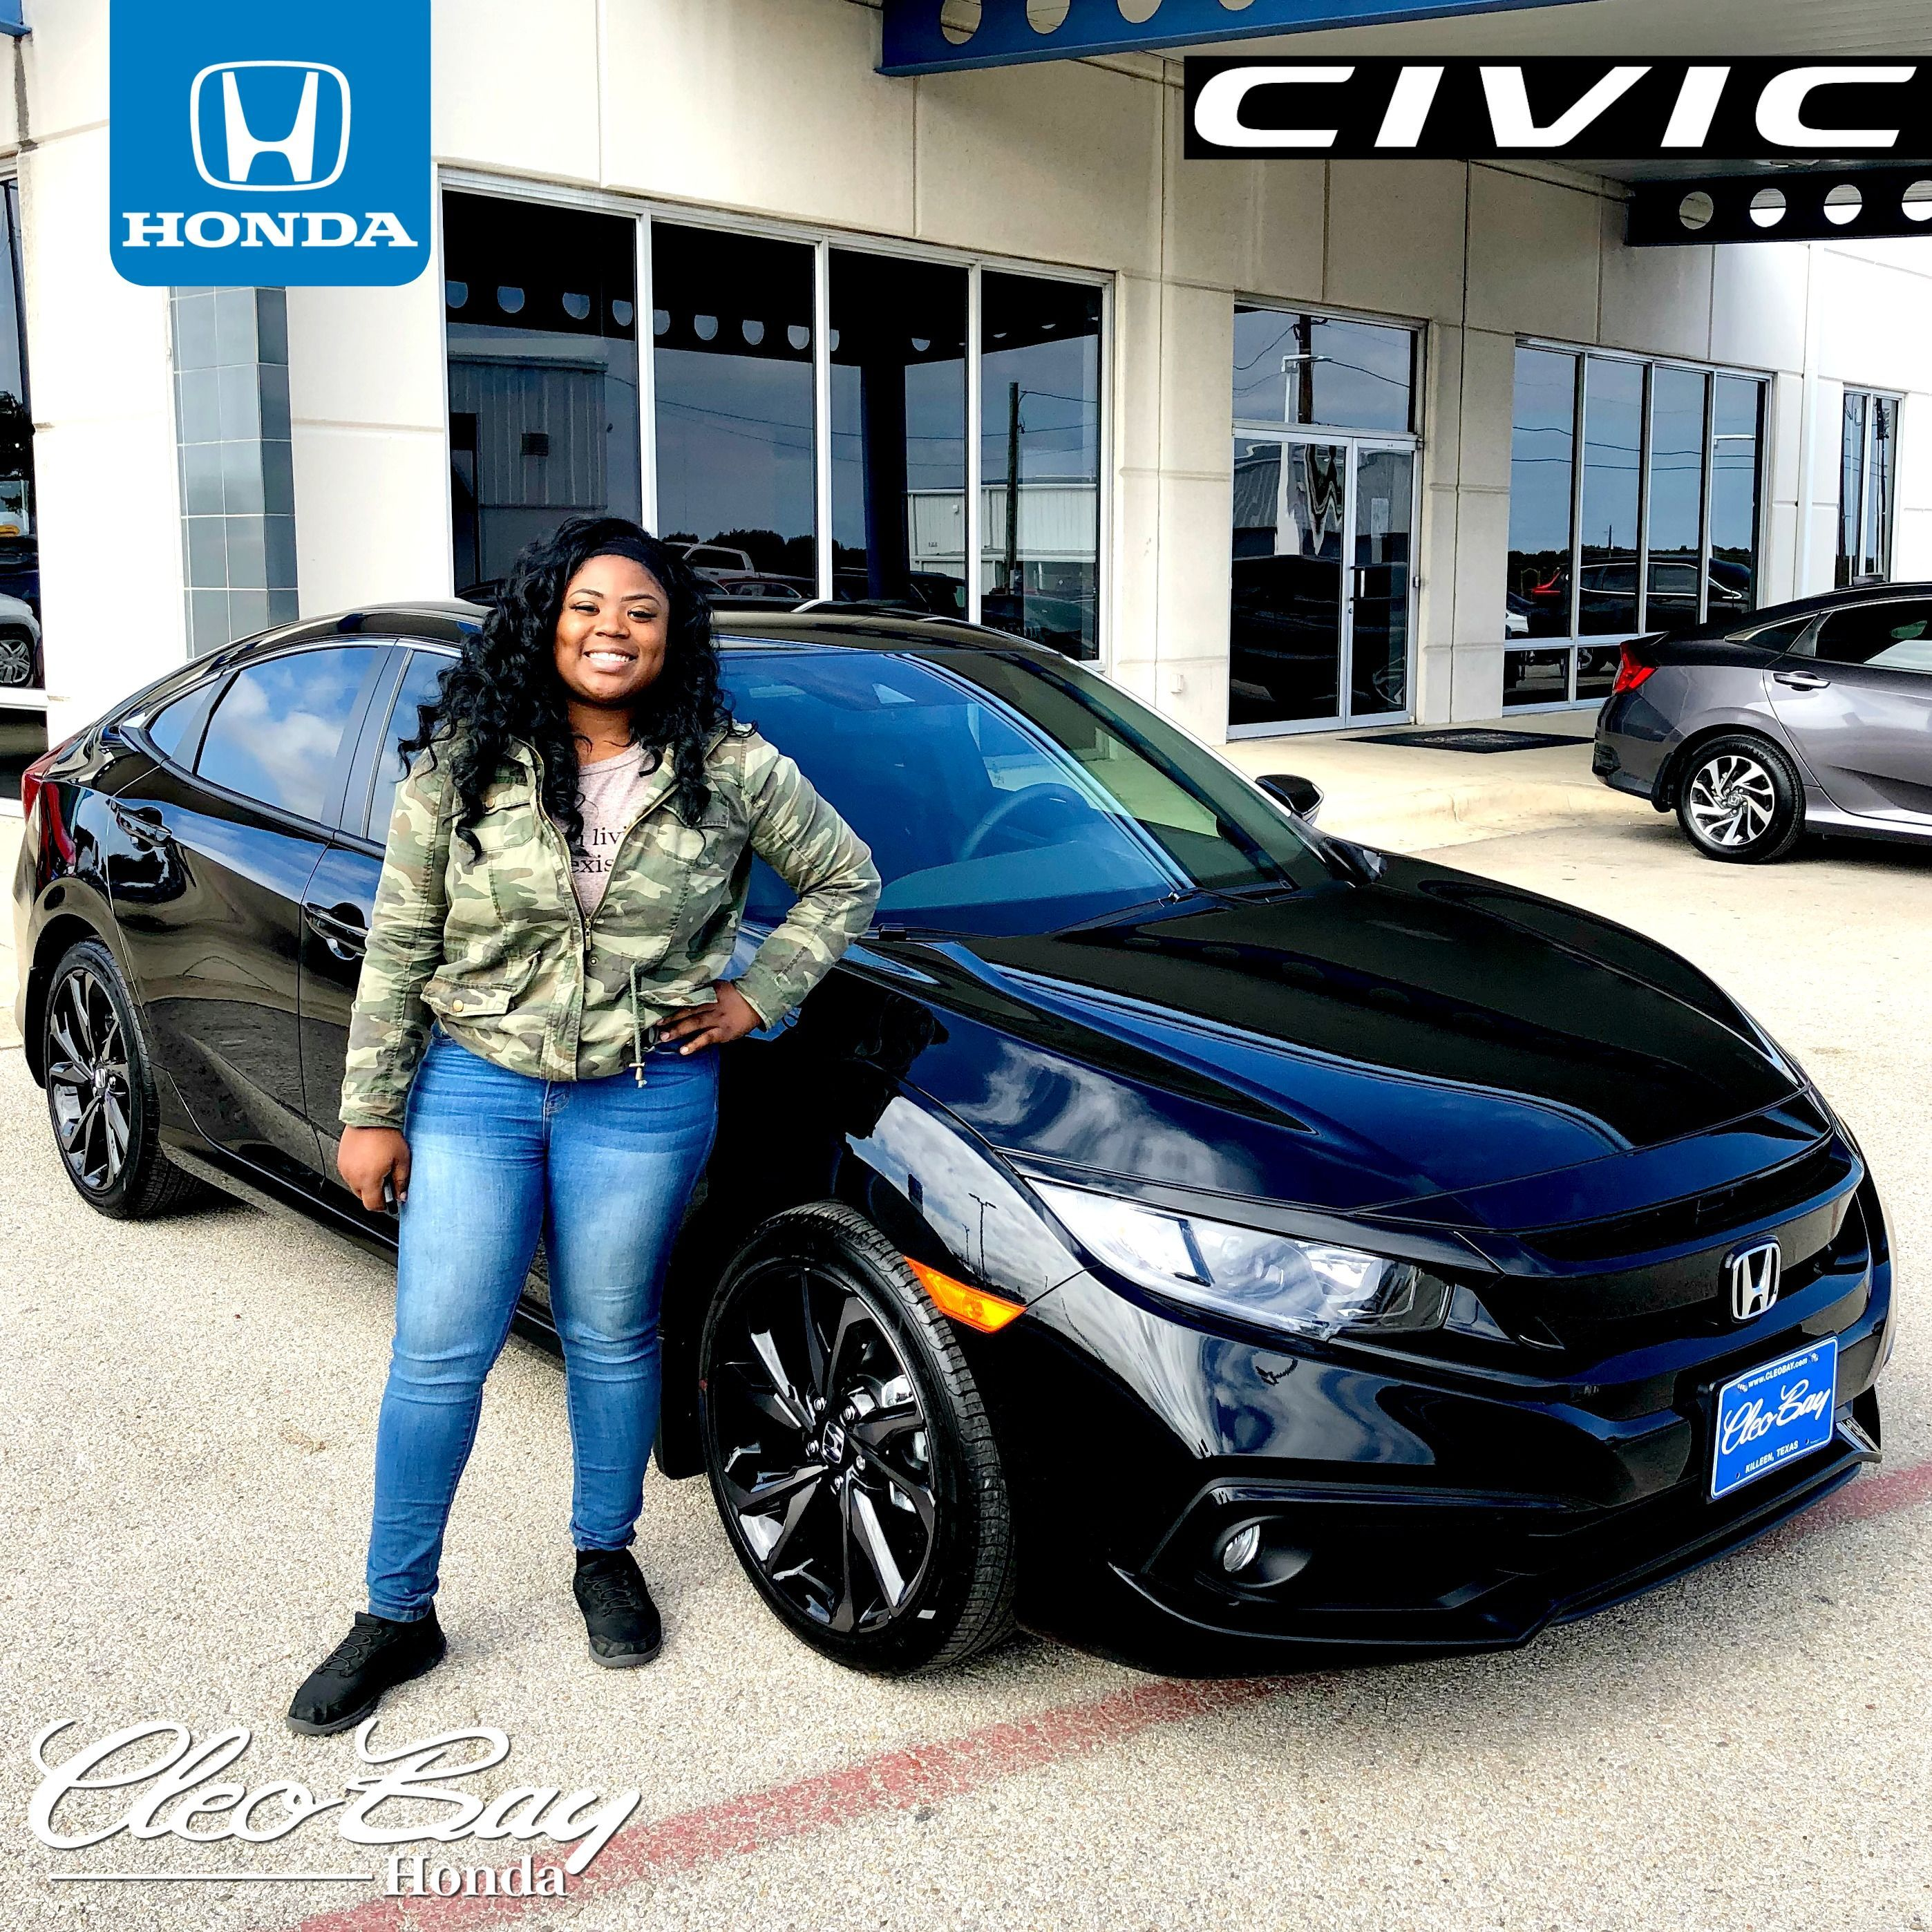 Congratulations Altoona On Your Recent Purchase Of A New 2020 Honda Civic Sport Click The Pic To Check Out Our Honda Civic Honda Civic Sport Honda Civic Sedan